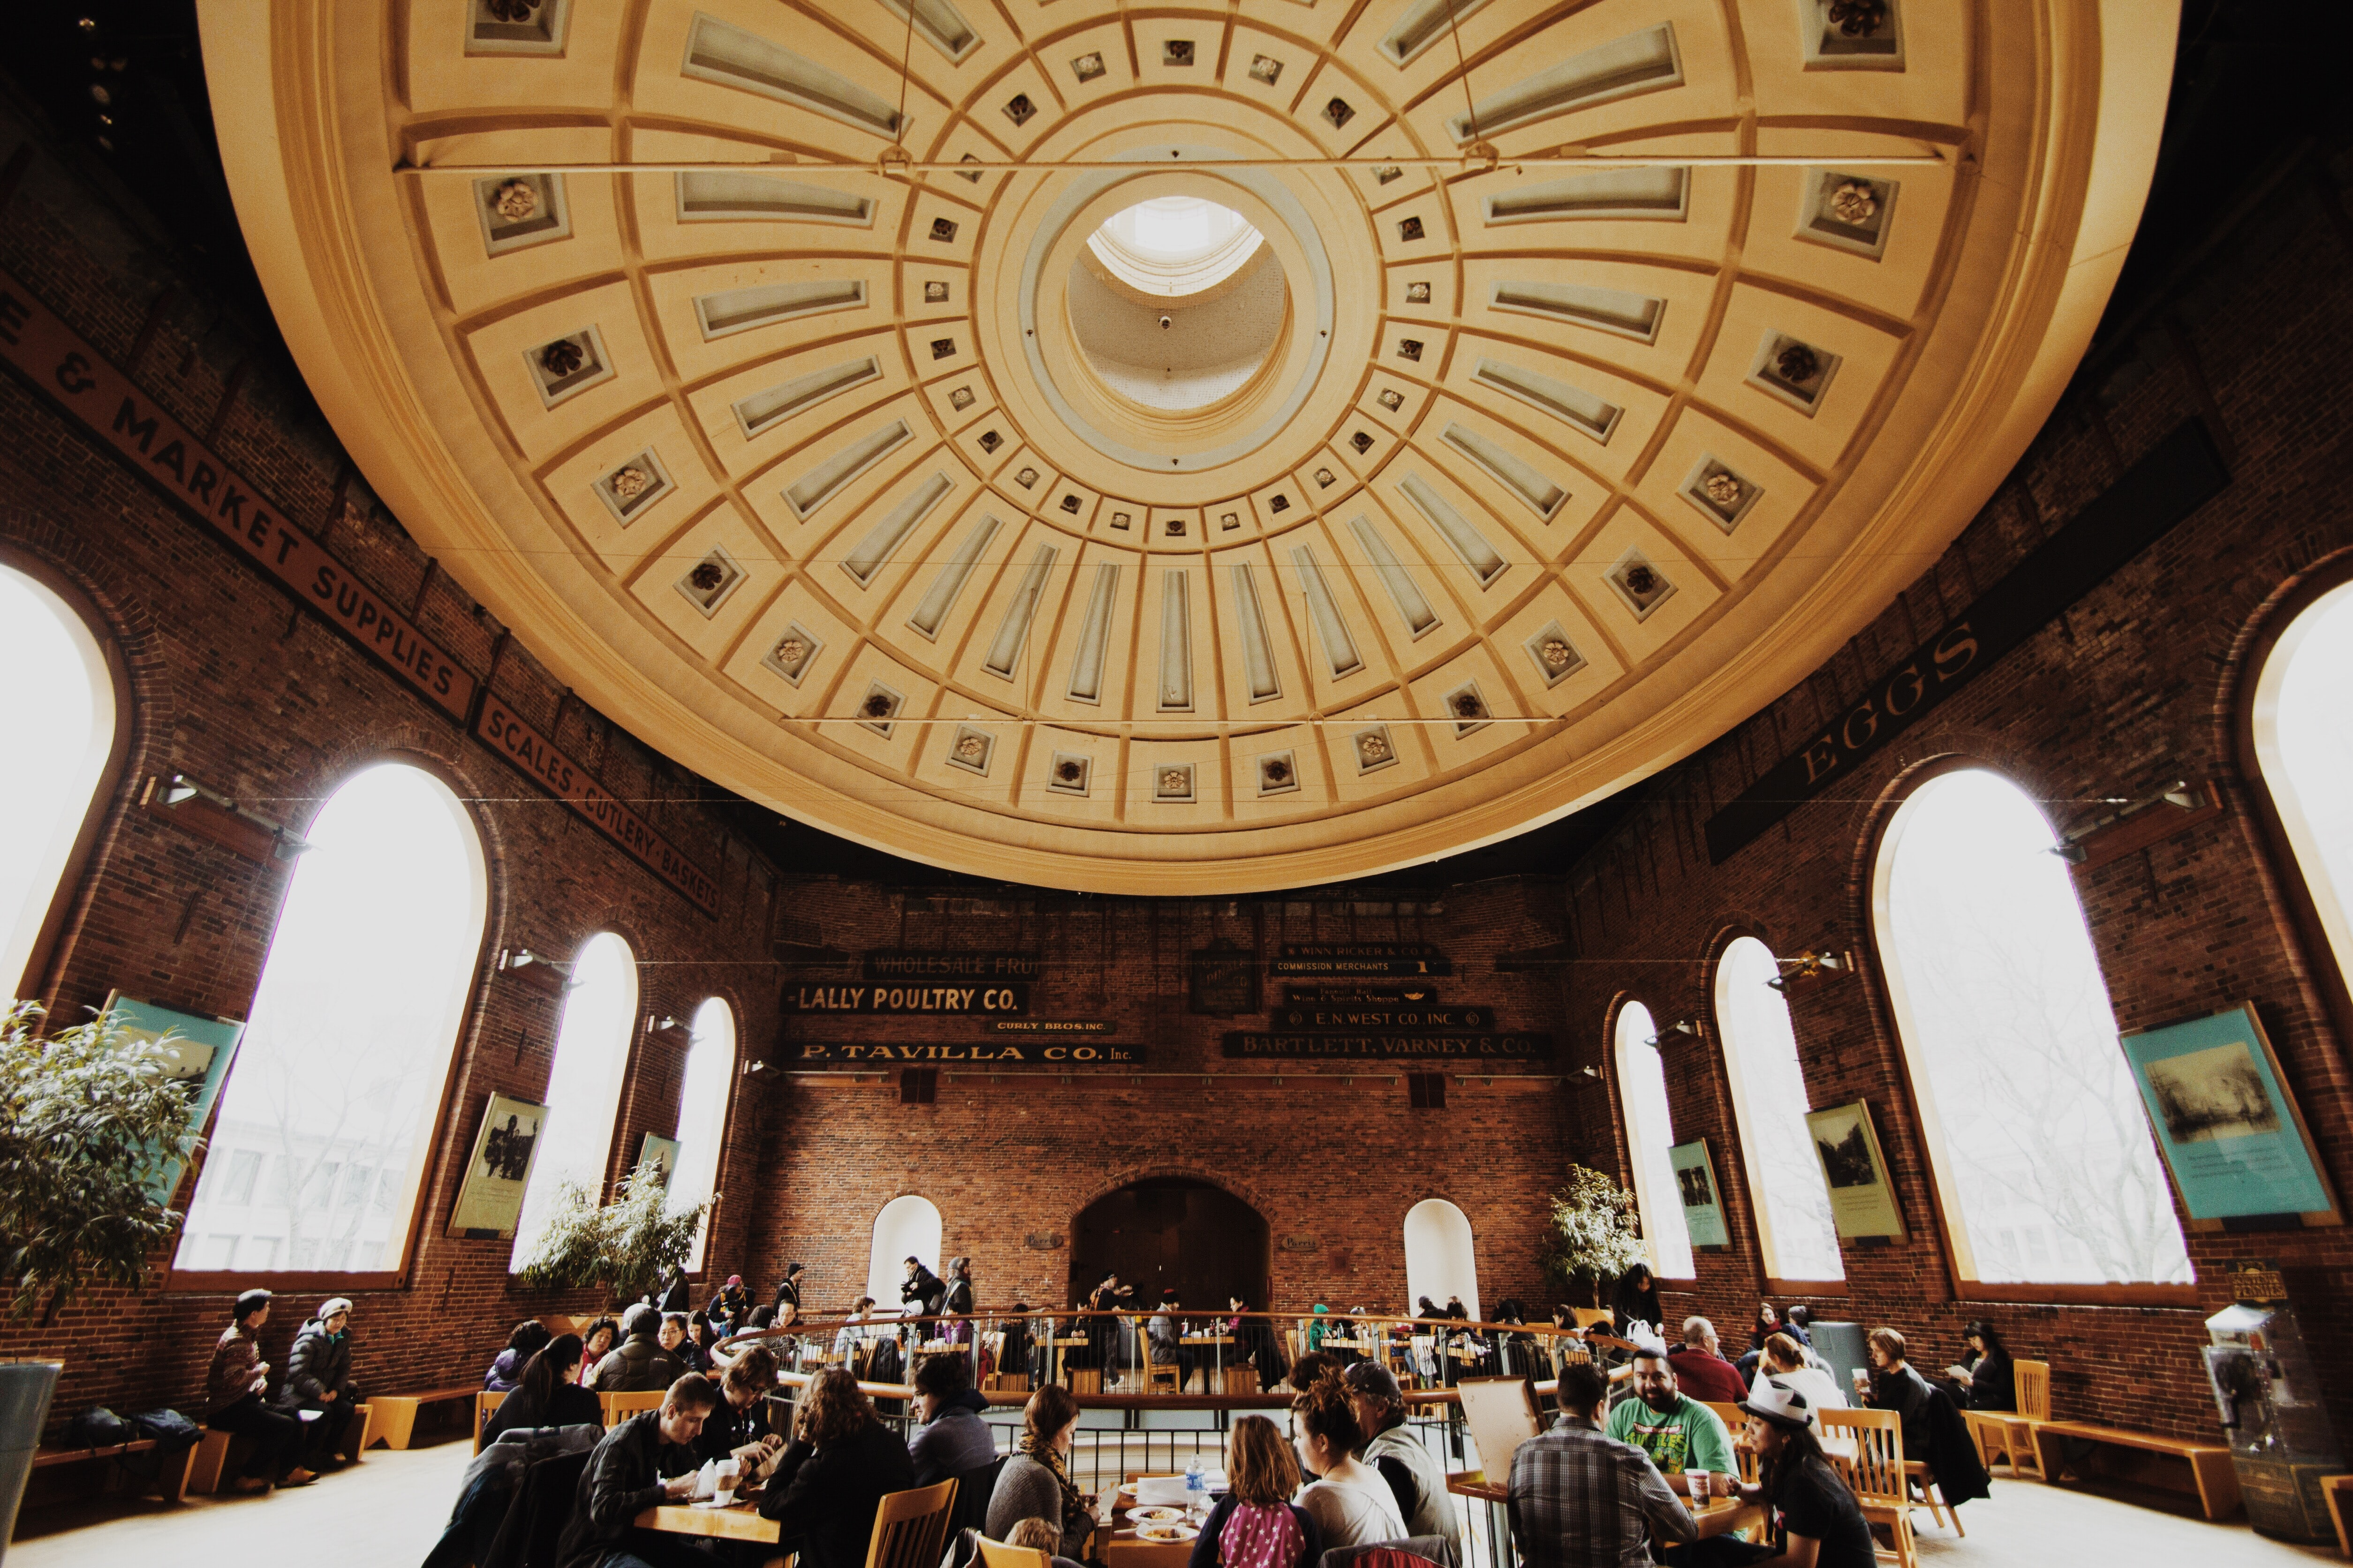 People eating at tables in a brick building with an impressive dome